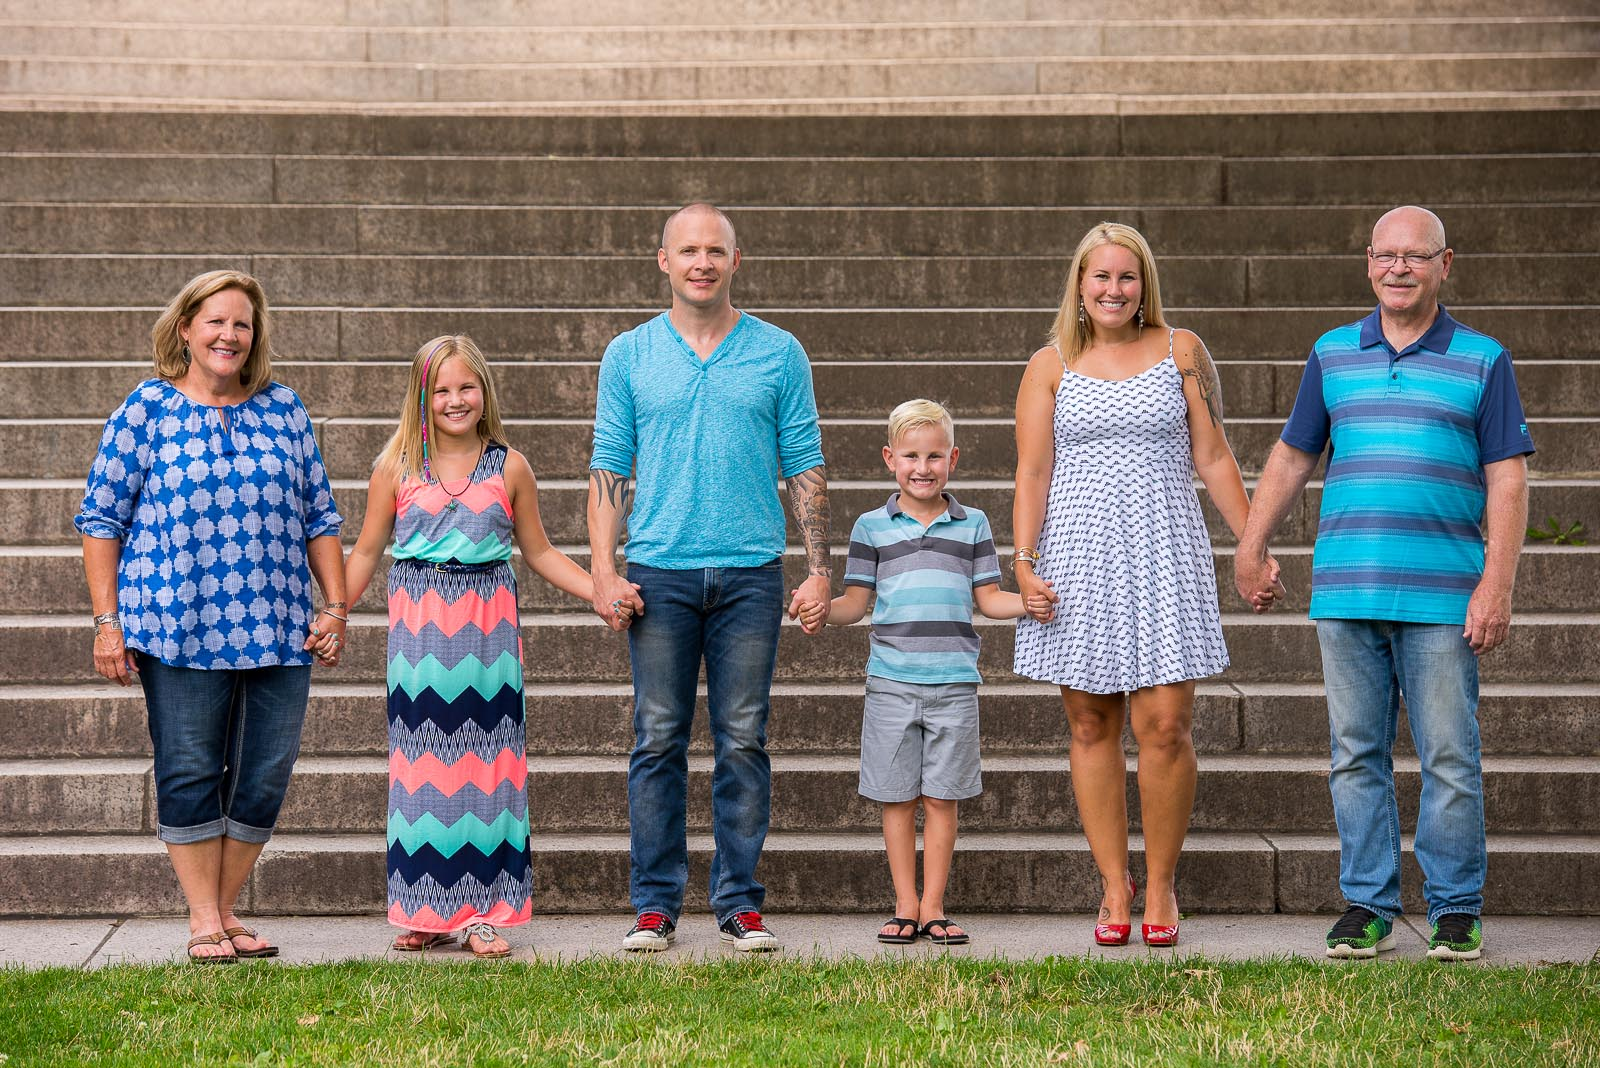 eric_and_christy_photographers_blog_family_kerriaaron-12